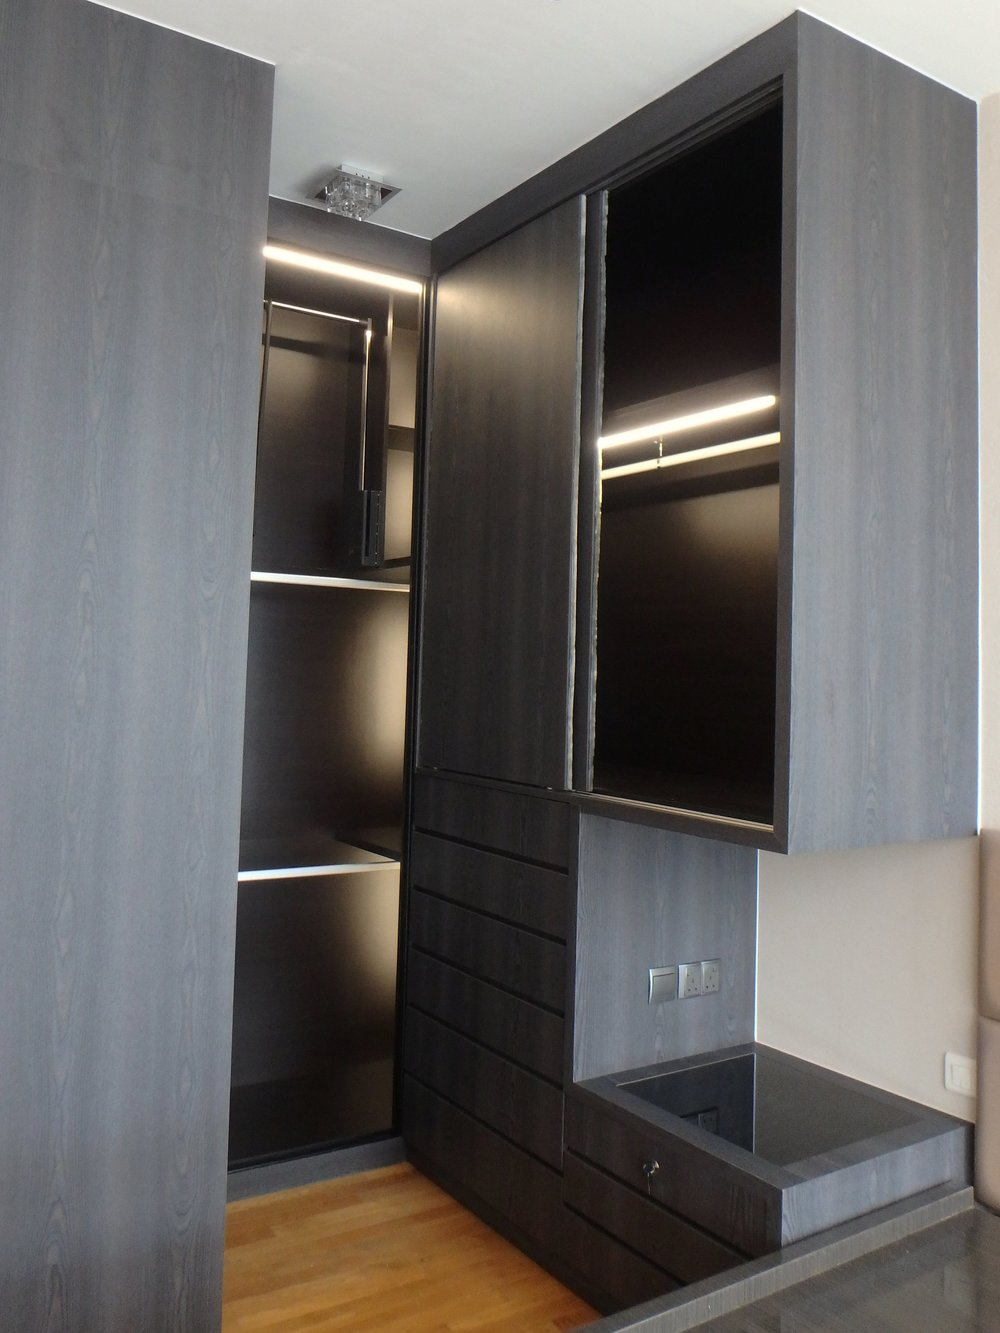 Re-designing 2 bedrooms with ample wardrobe space for  HIM  and for  HER .